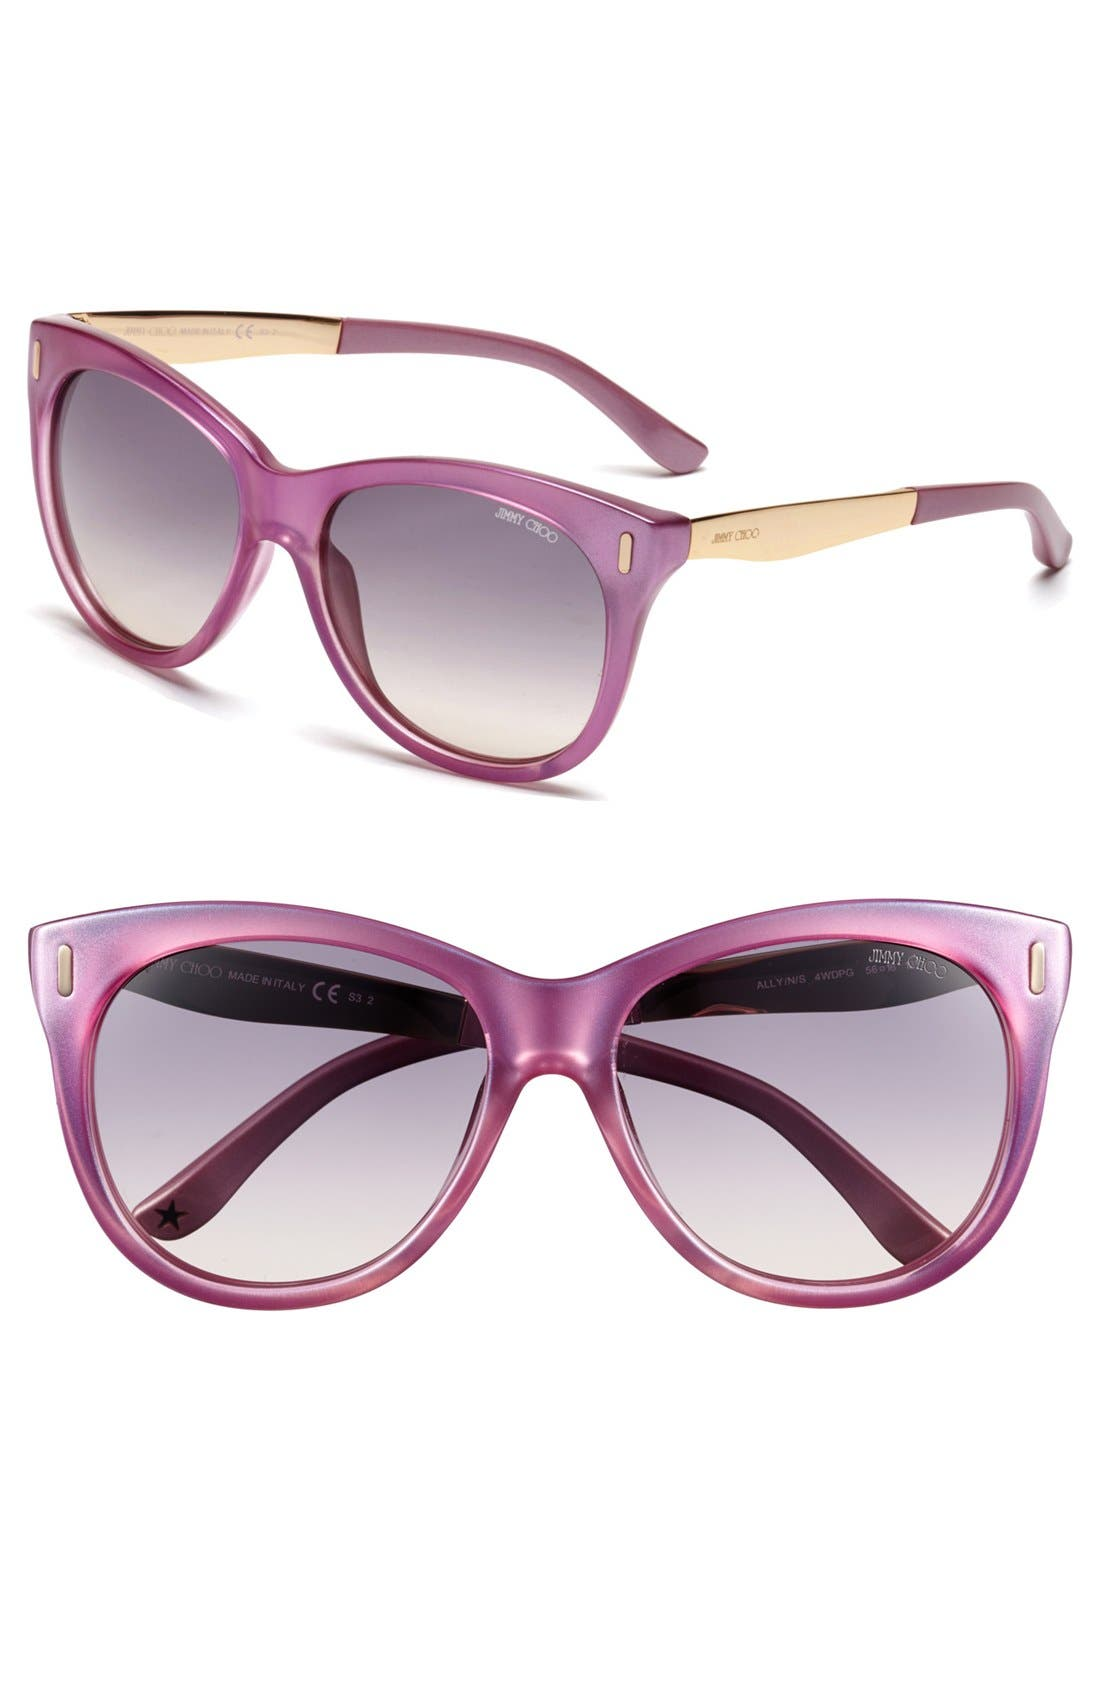 Alternate Image 1 Selected - Jimmy Choo 56mm Retro Sunglasses